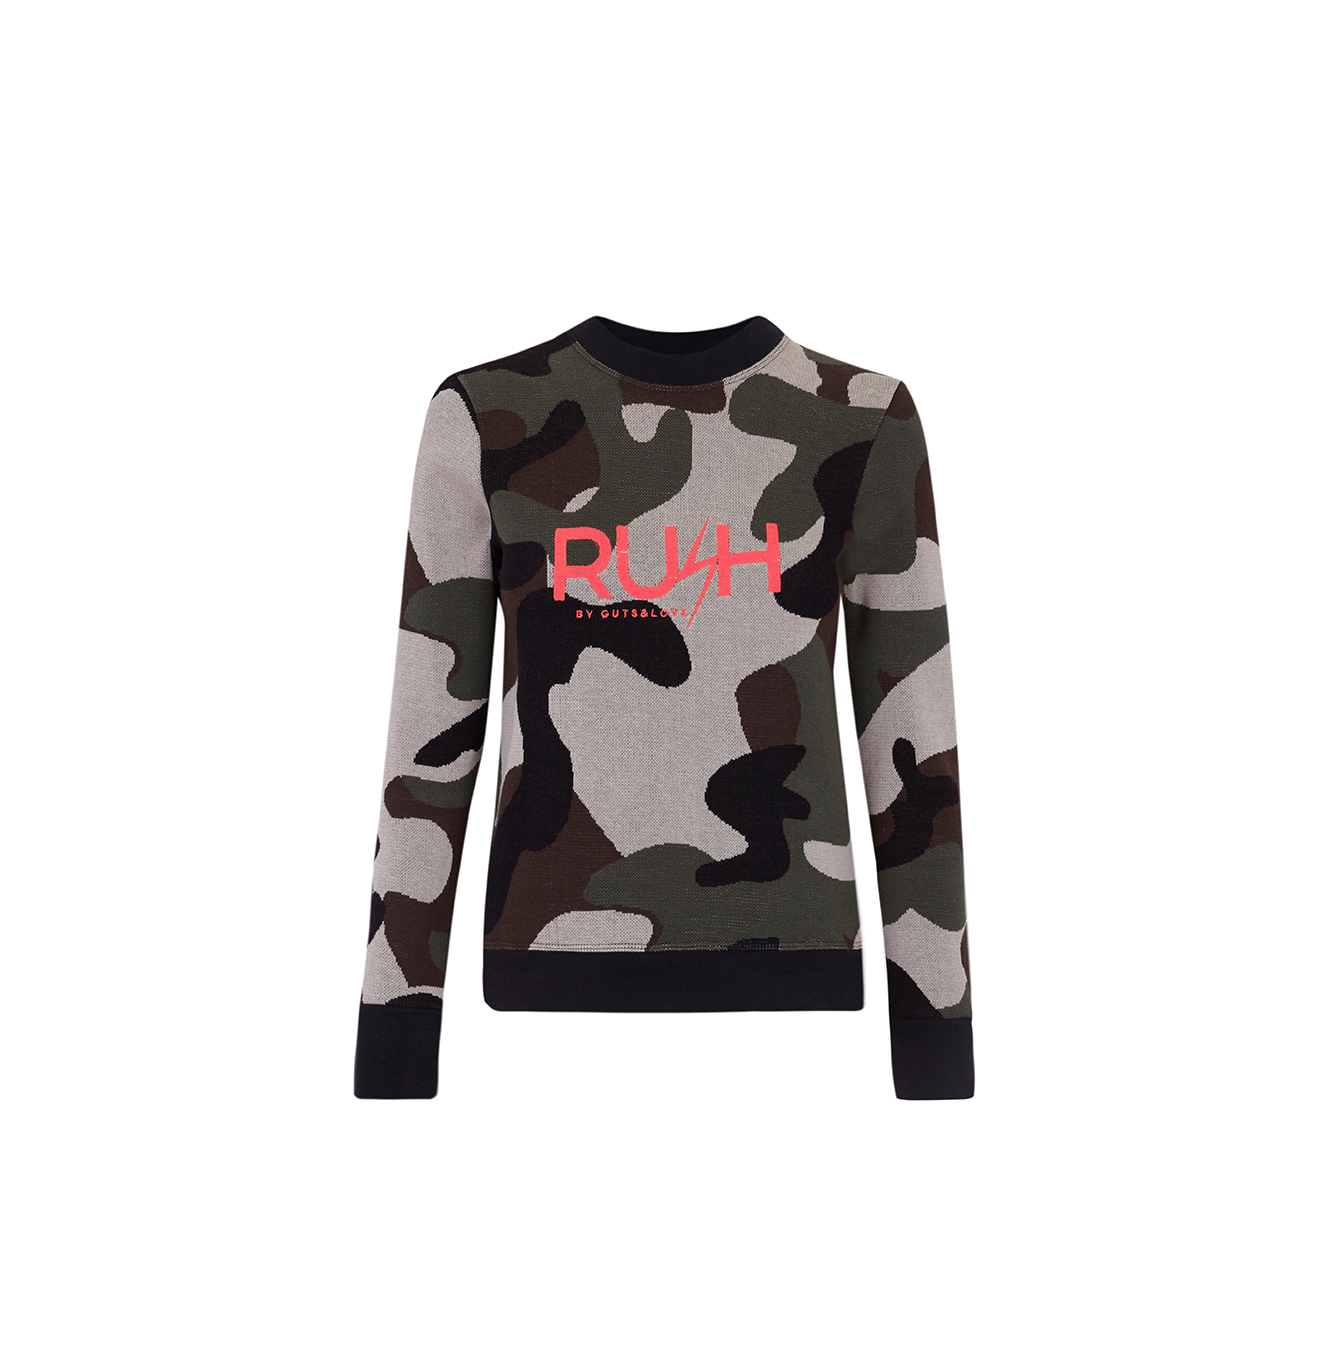 JERSEY CAMO JUMPER RUSH by Guts&Love